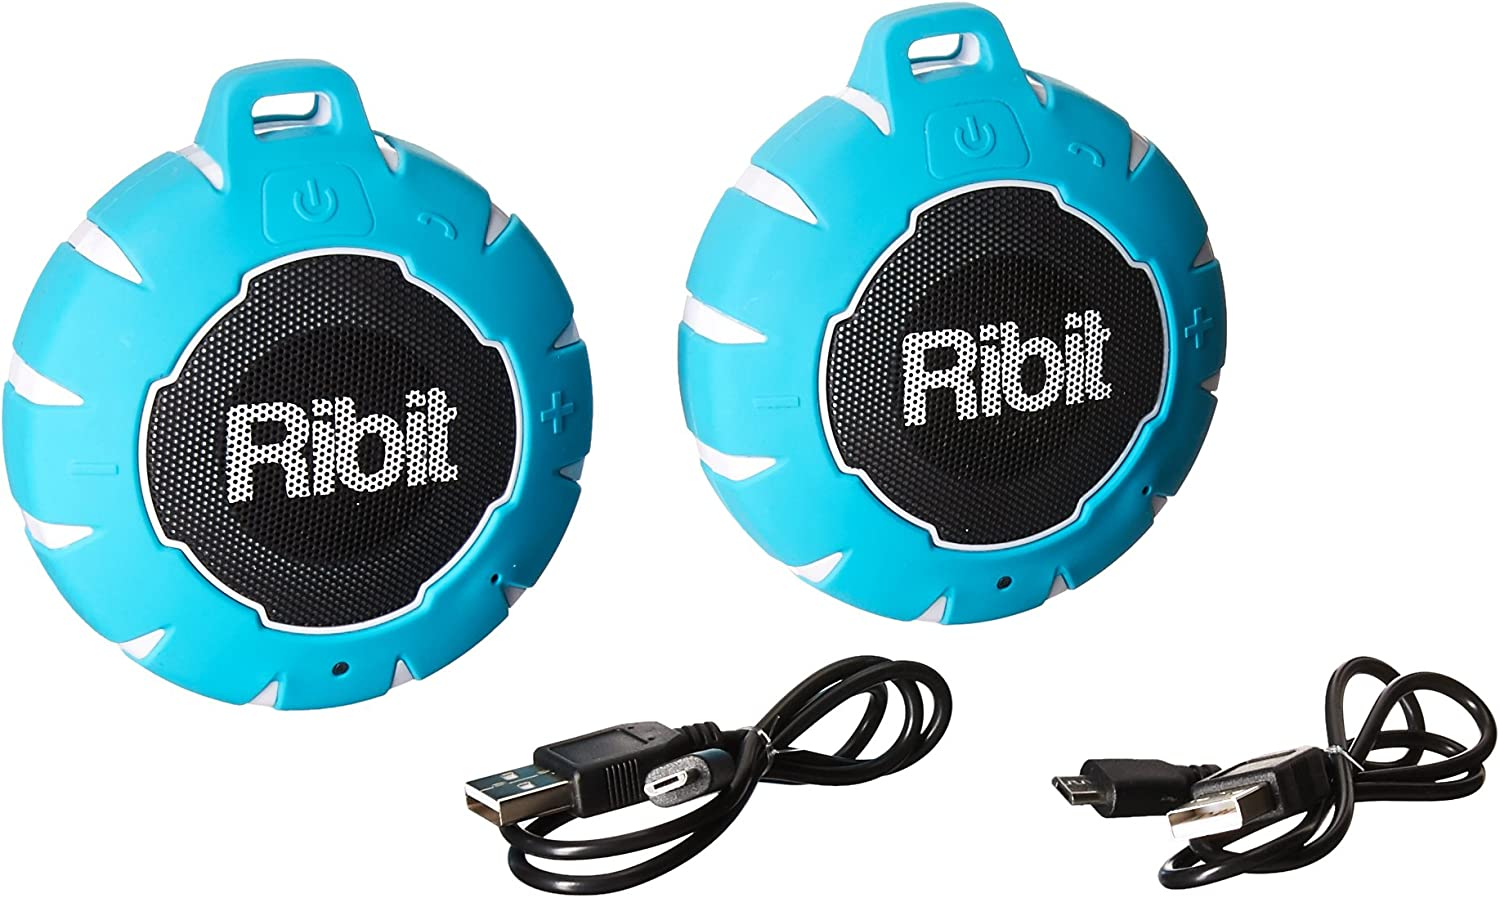 Amazon Com Ribit Red Waterproof Bluetooth Speakers Ipx7 Outdoor Wireless Speakers Best Bluetooth Speakers For Pool And Shower Floating Stereo Speaker Pair Home Audio Theater